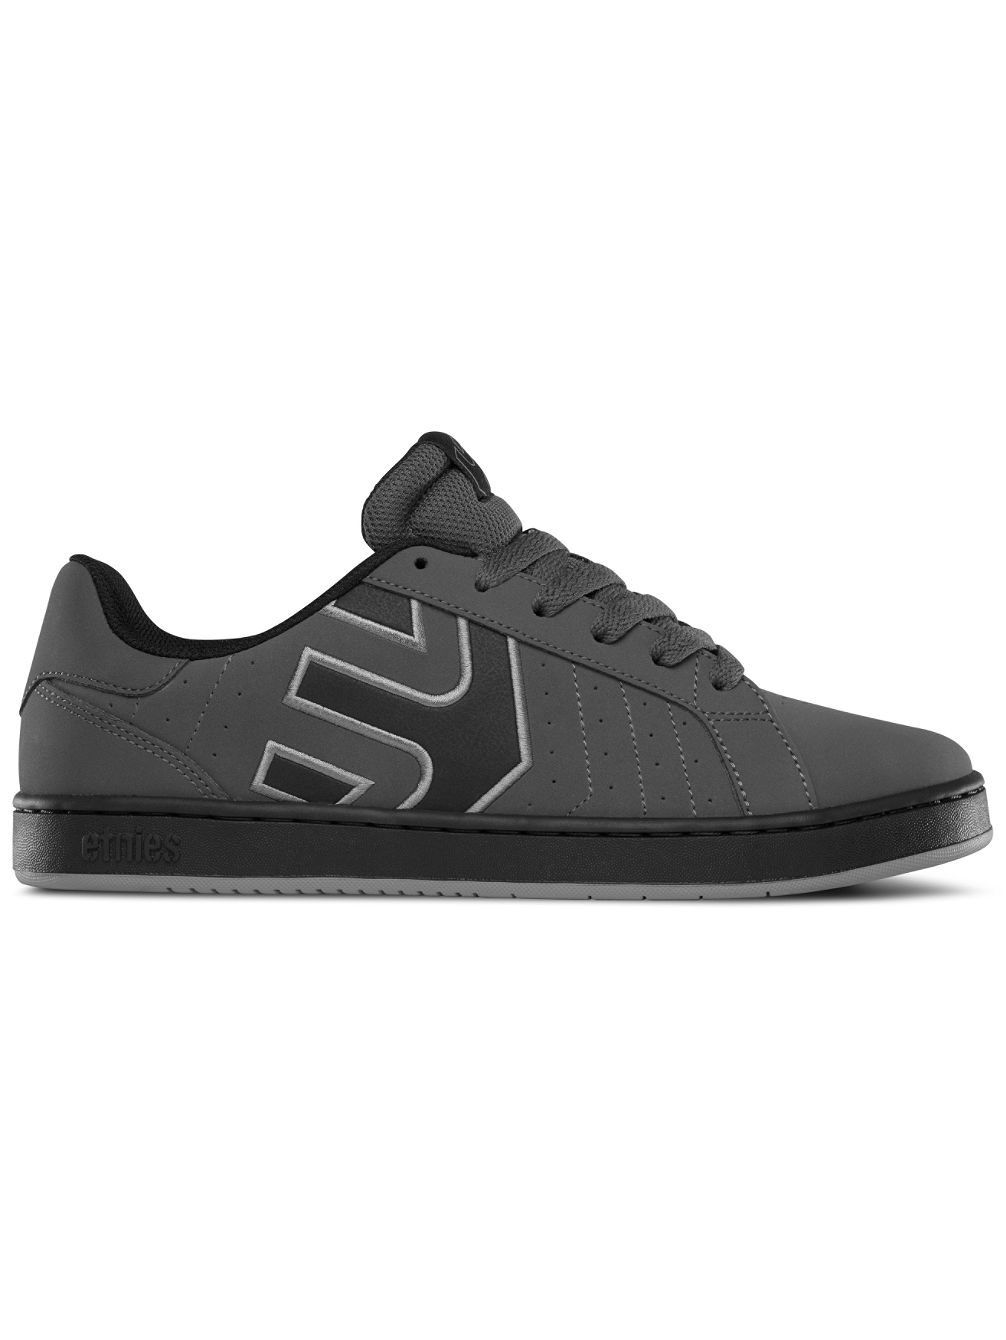 Fader Ls Skate Shoes